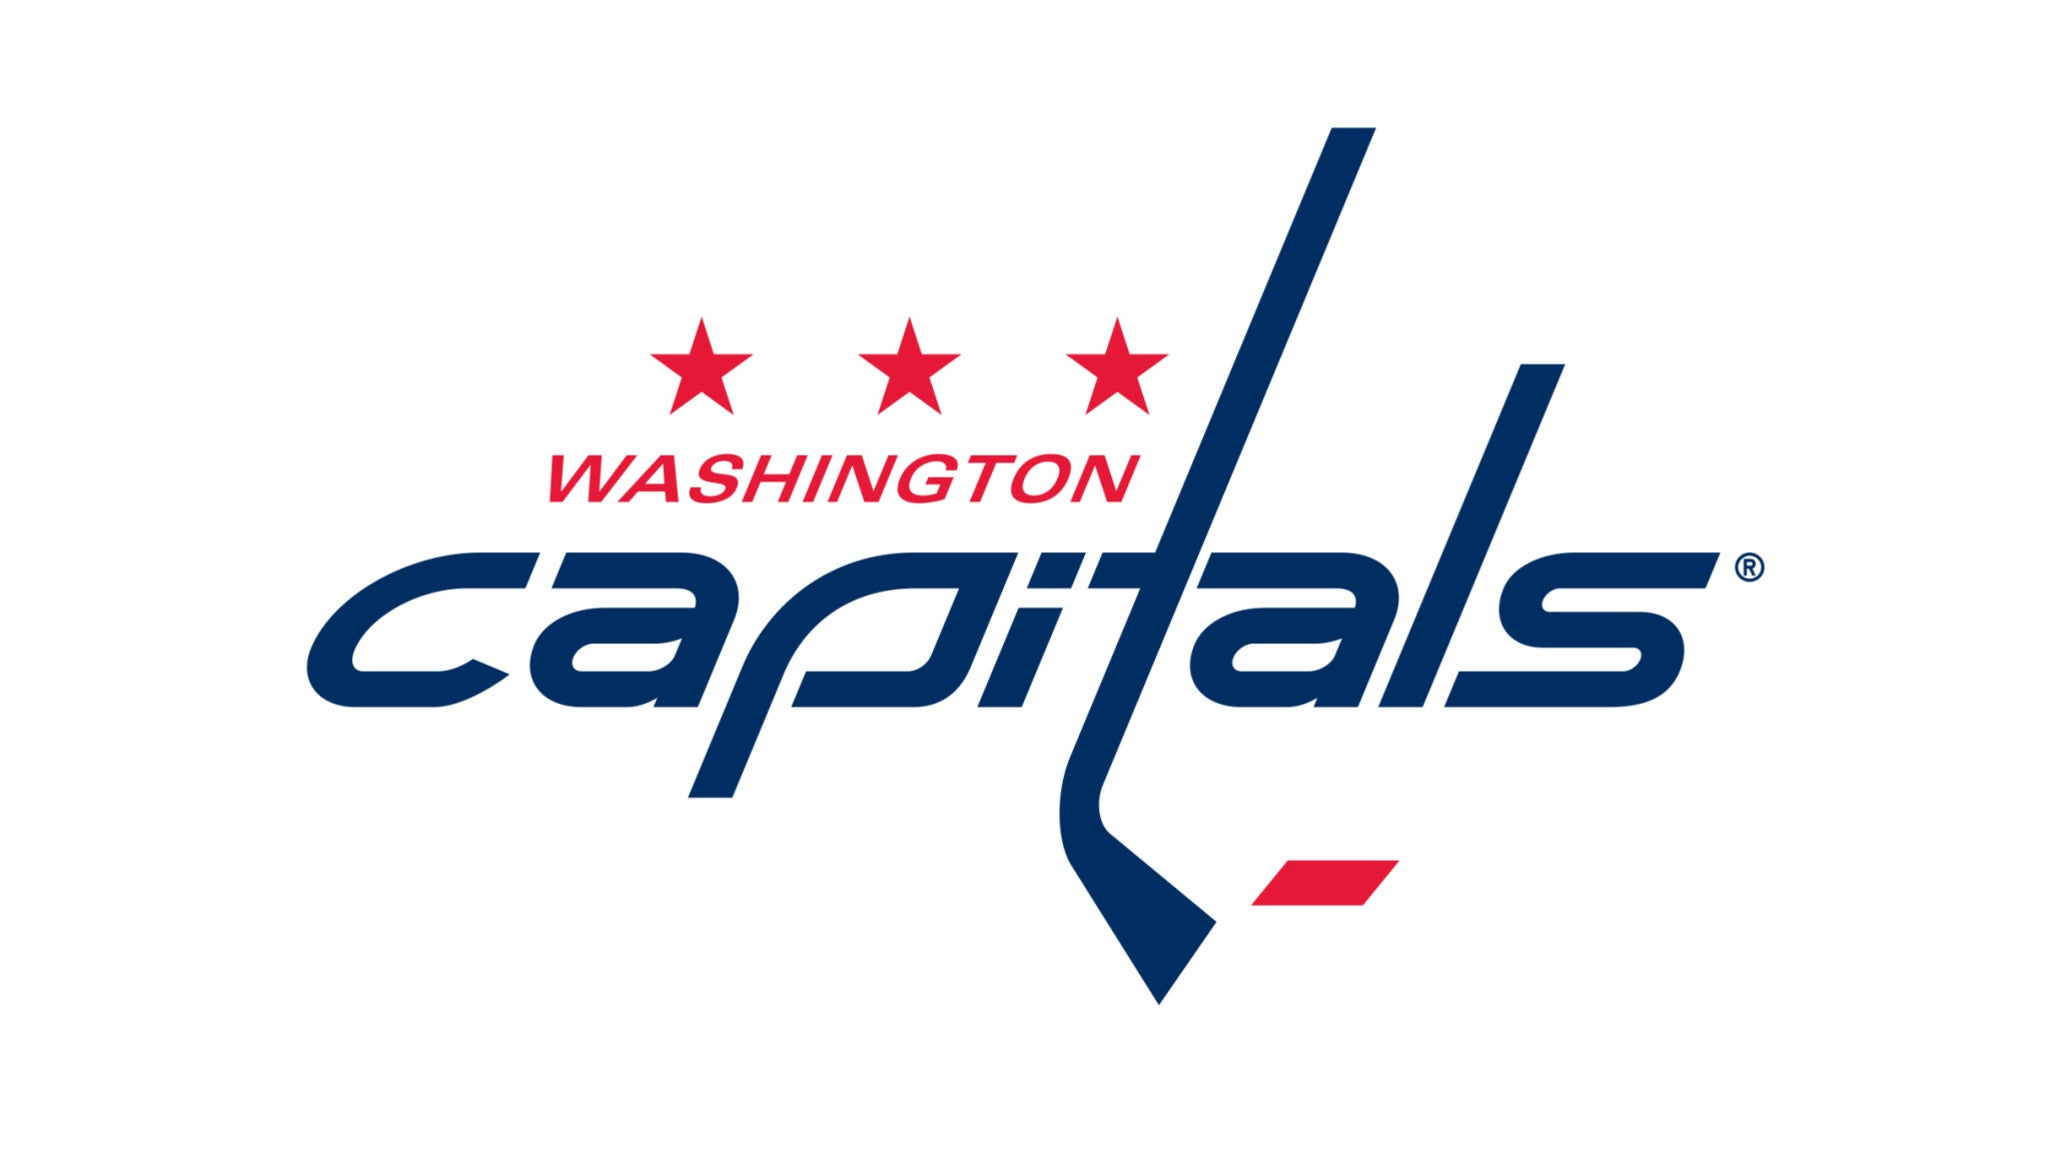 Washington Capitals vs. Chicago Blackhawks